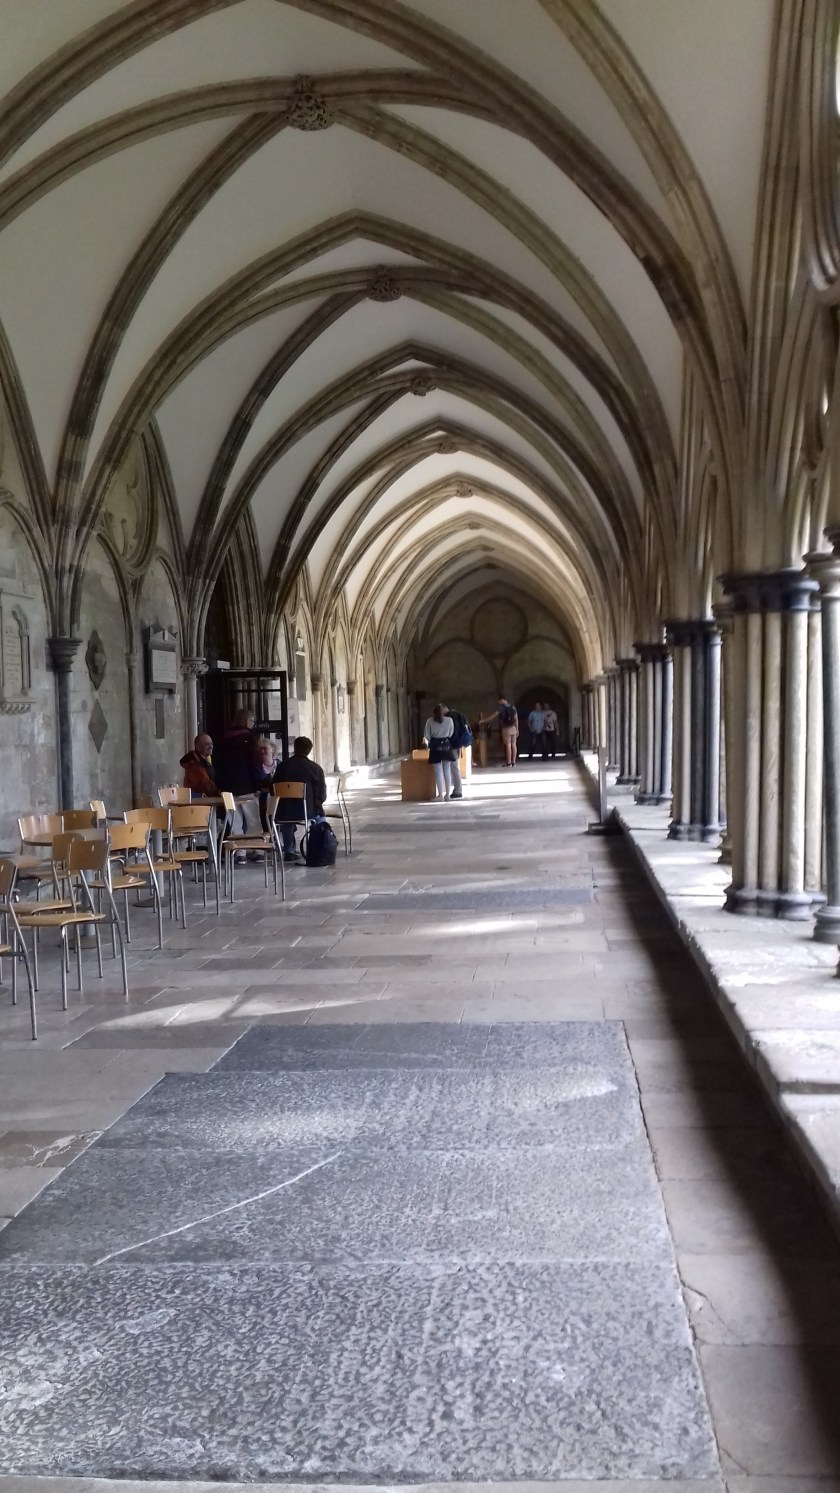 Part of the cloisters of Salisbury cathedral